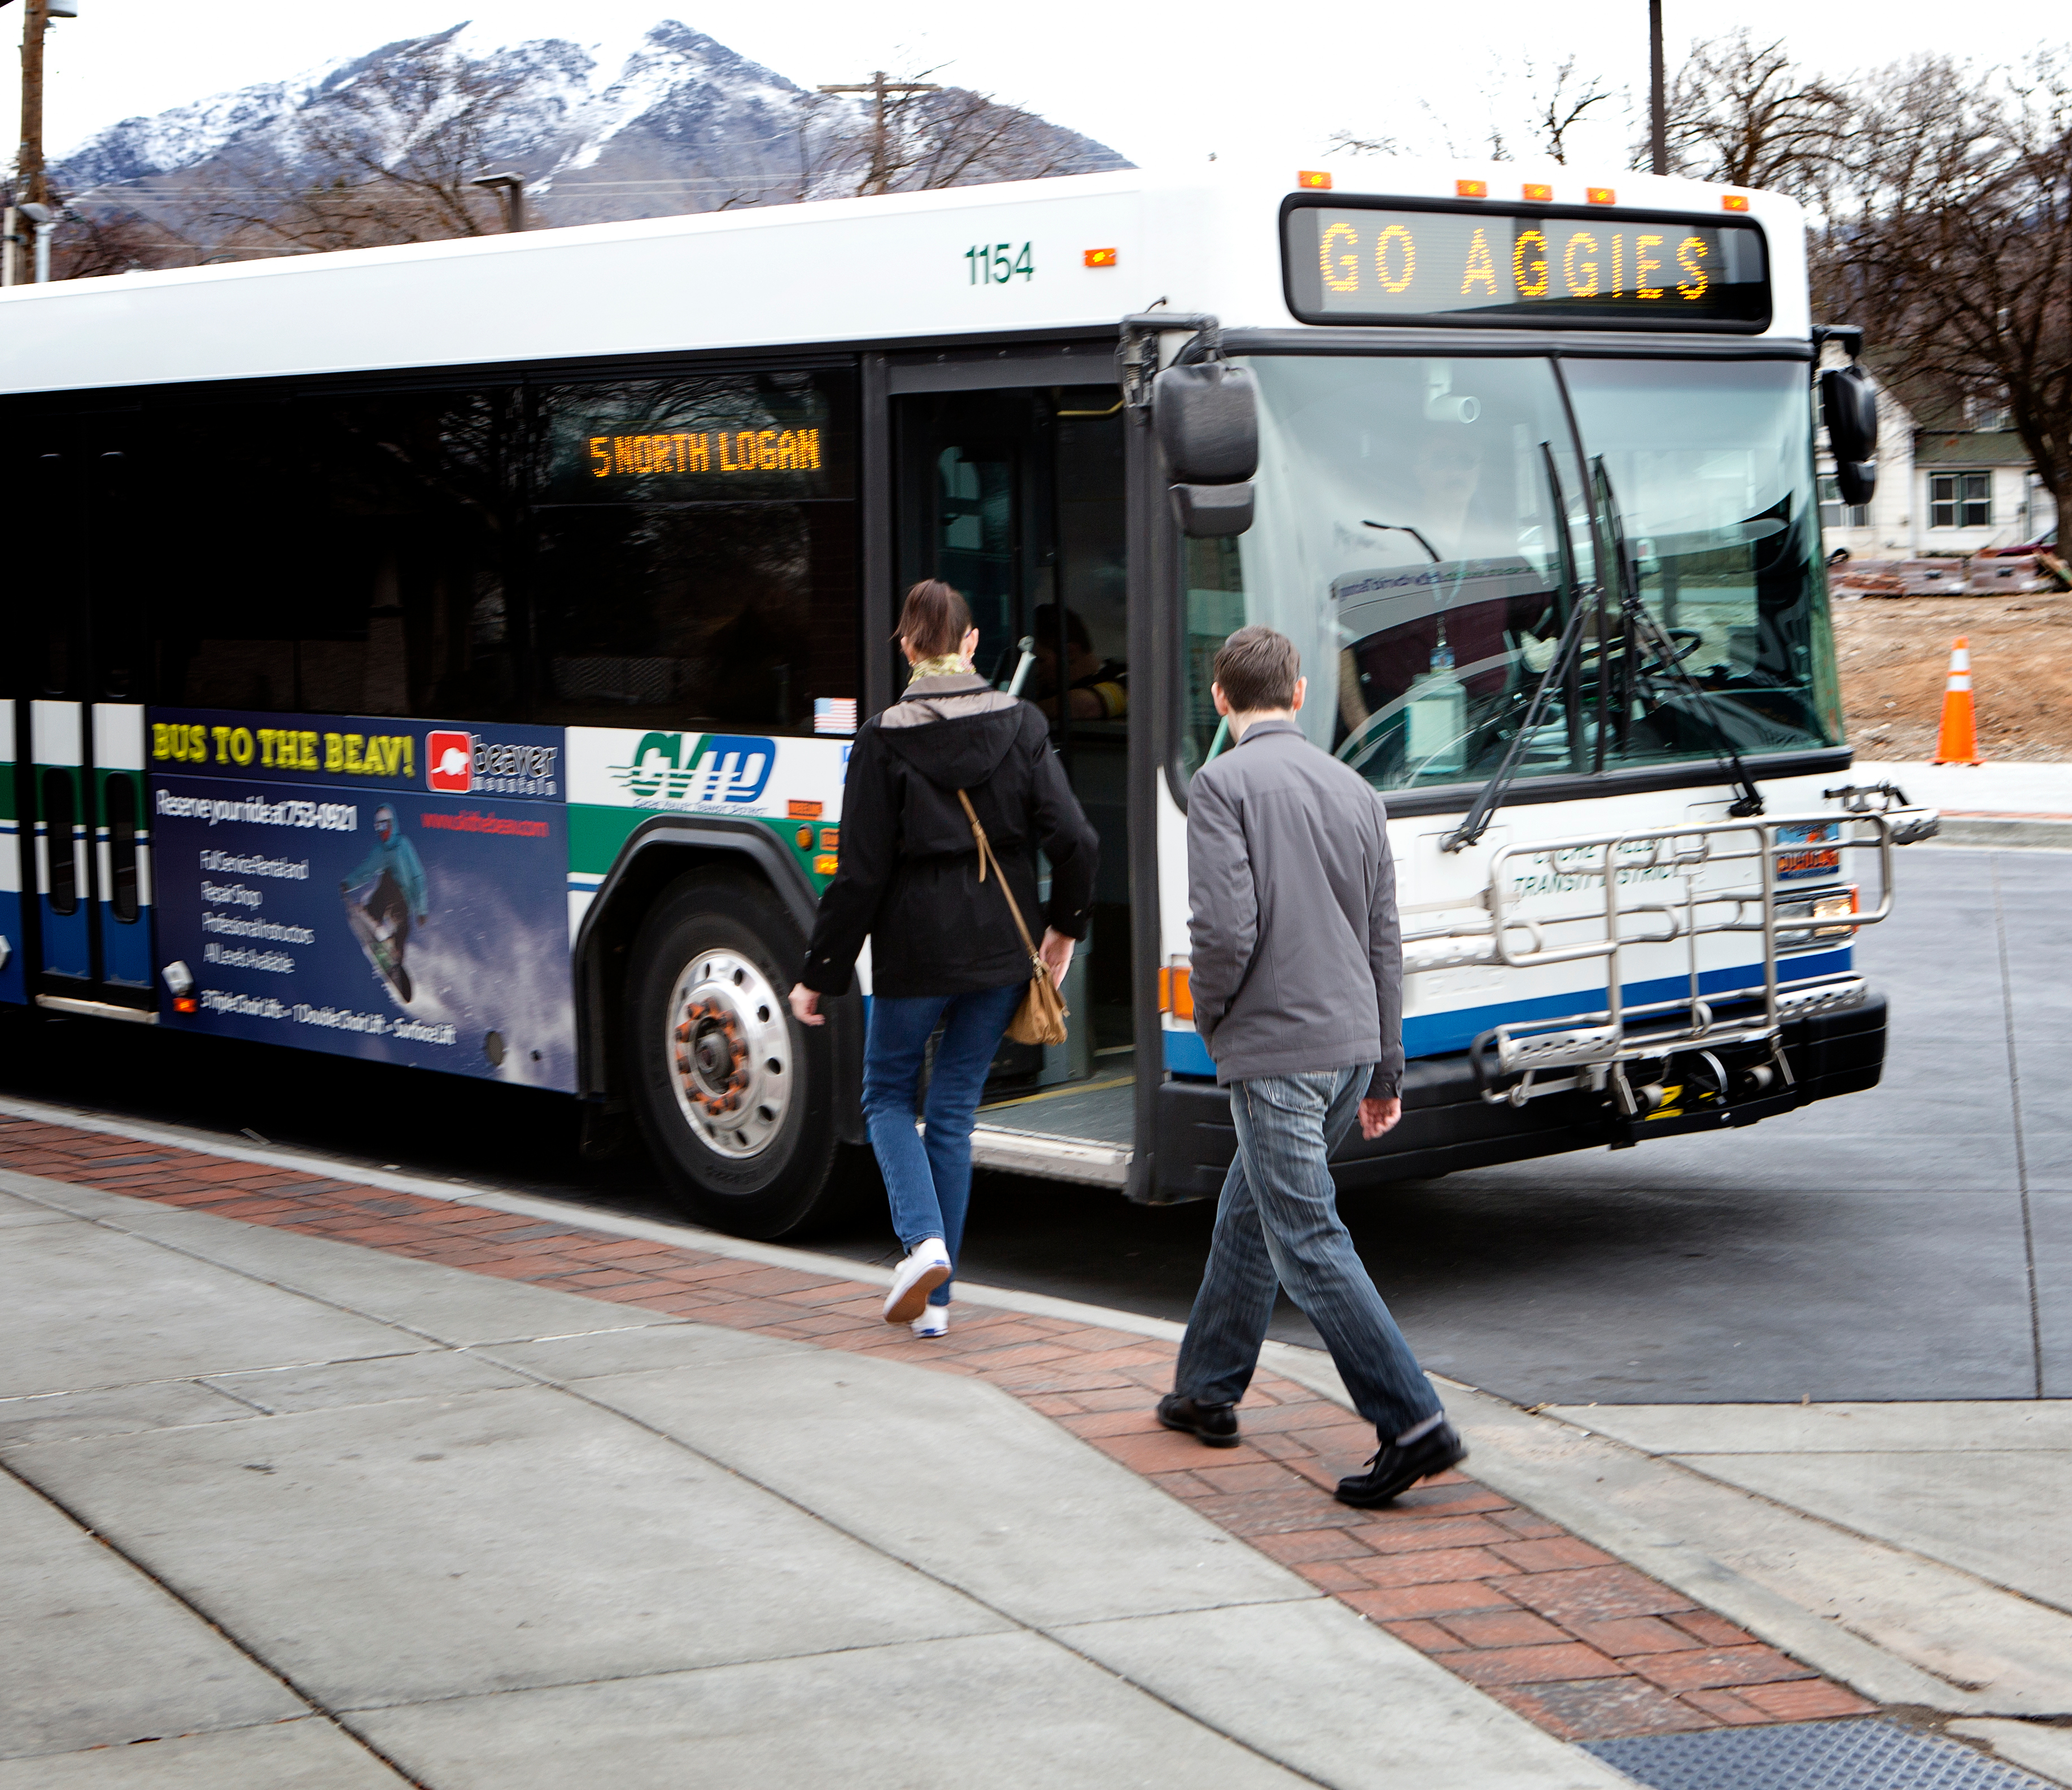 Logan to Salt Lake Airport. Posted by Salt Lake Express on April 30, Written by Salt Lake Express. Recent News. Salt Lake Express, a shuttle service company popular along the northern I corridor, has expanded their routes and services to the southern Utah region.